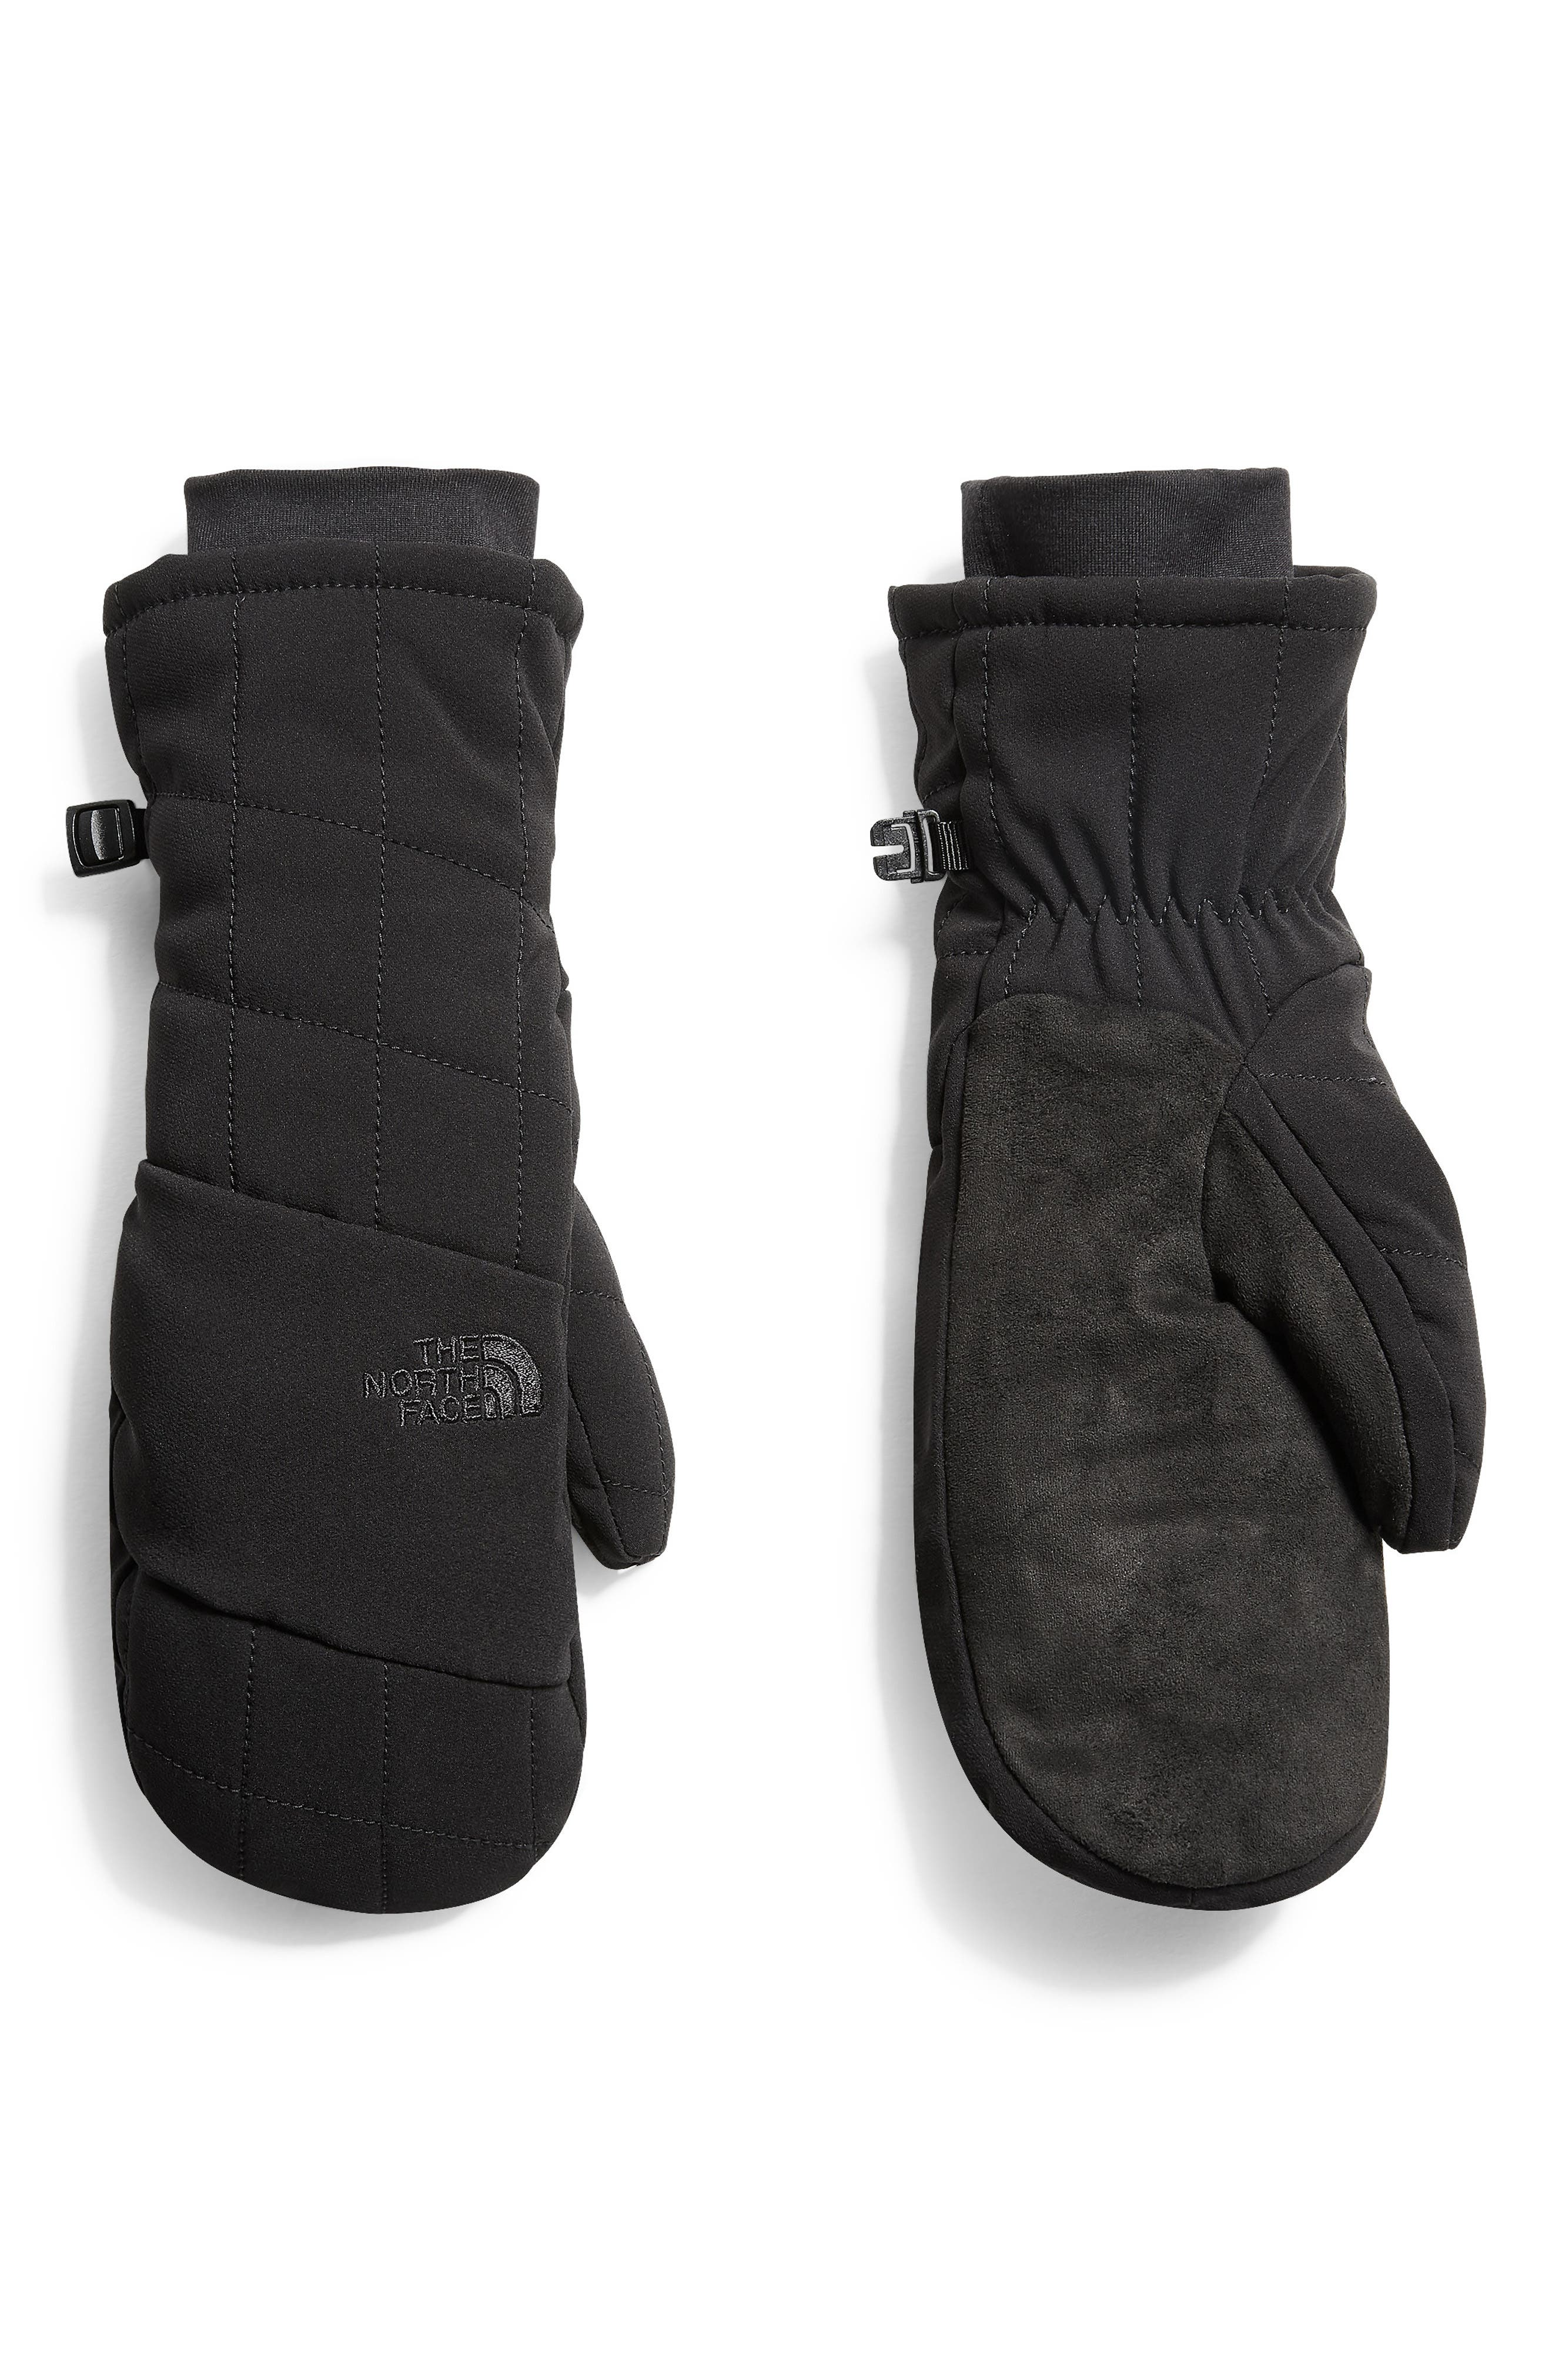 Pseudio Water Resistant Heatseeker<sup>™</sup> Insulated Mittens,                             Main thumbnail 1, color,                             001